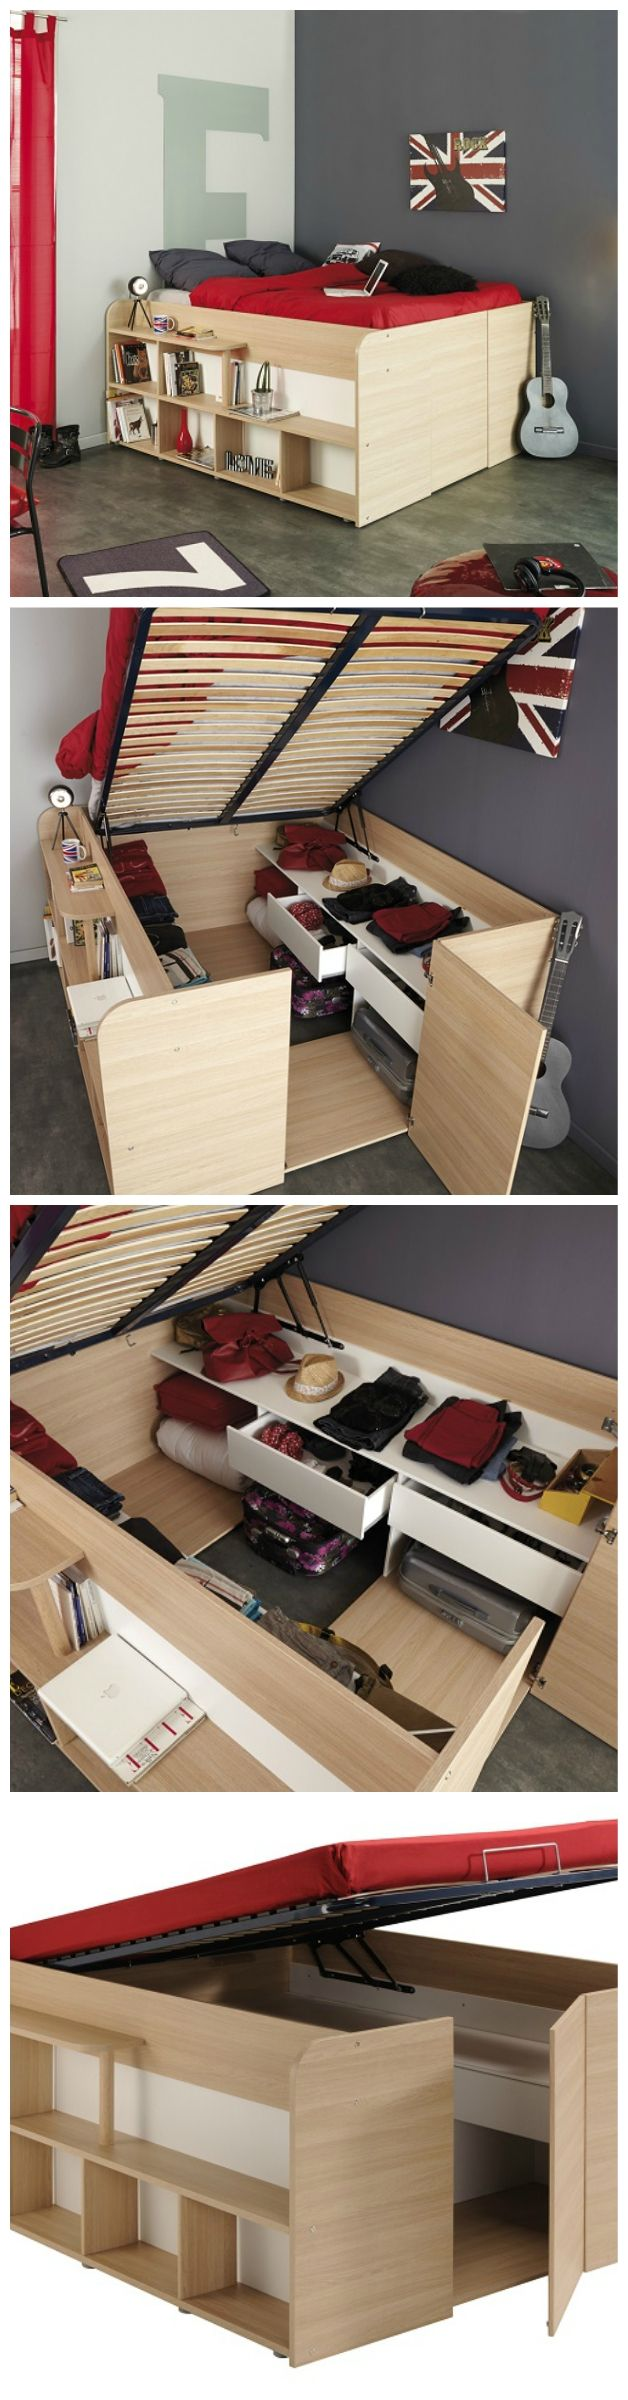 Space-Up Double Bed